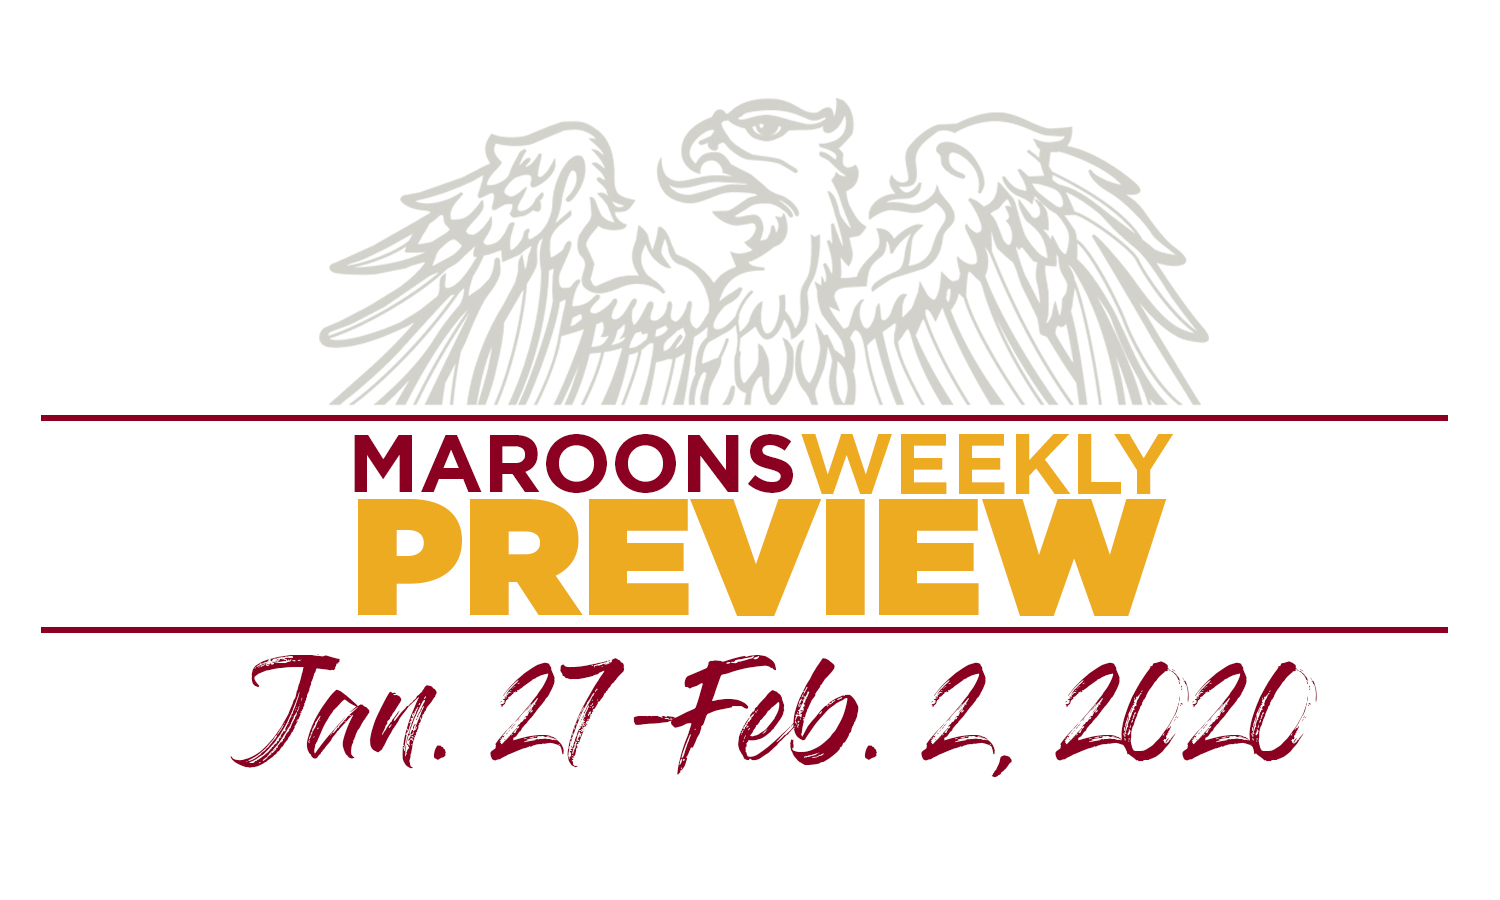 UChicago Athletics Preview: January 27-February 2